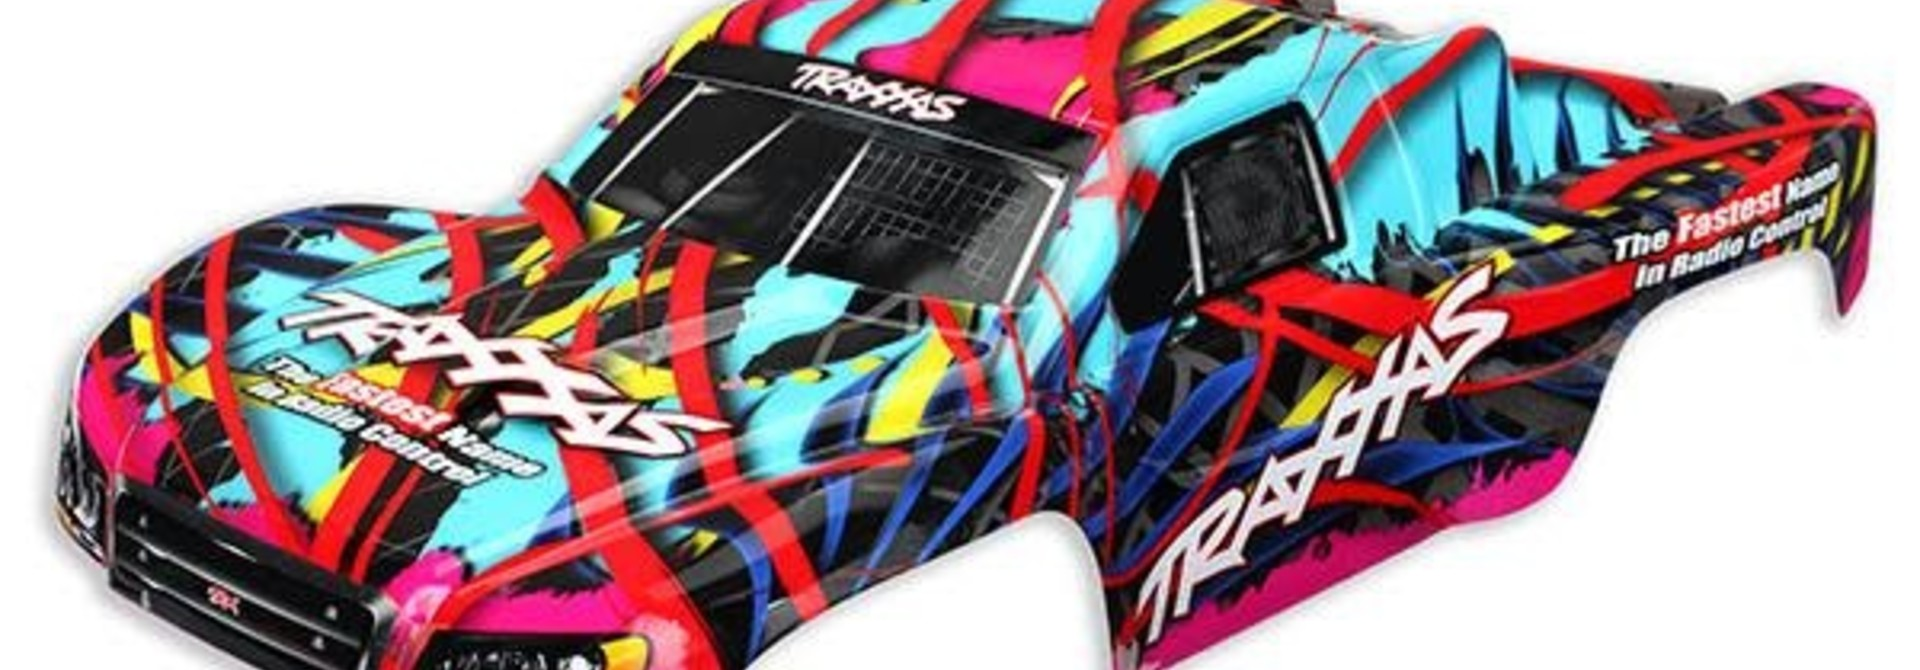 Body, Slash 4X4, Hawaiian graphics (painted, decals applied), #TRX5849